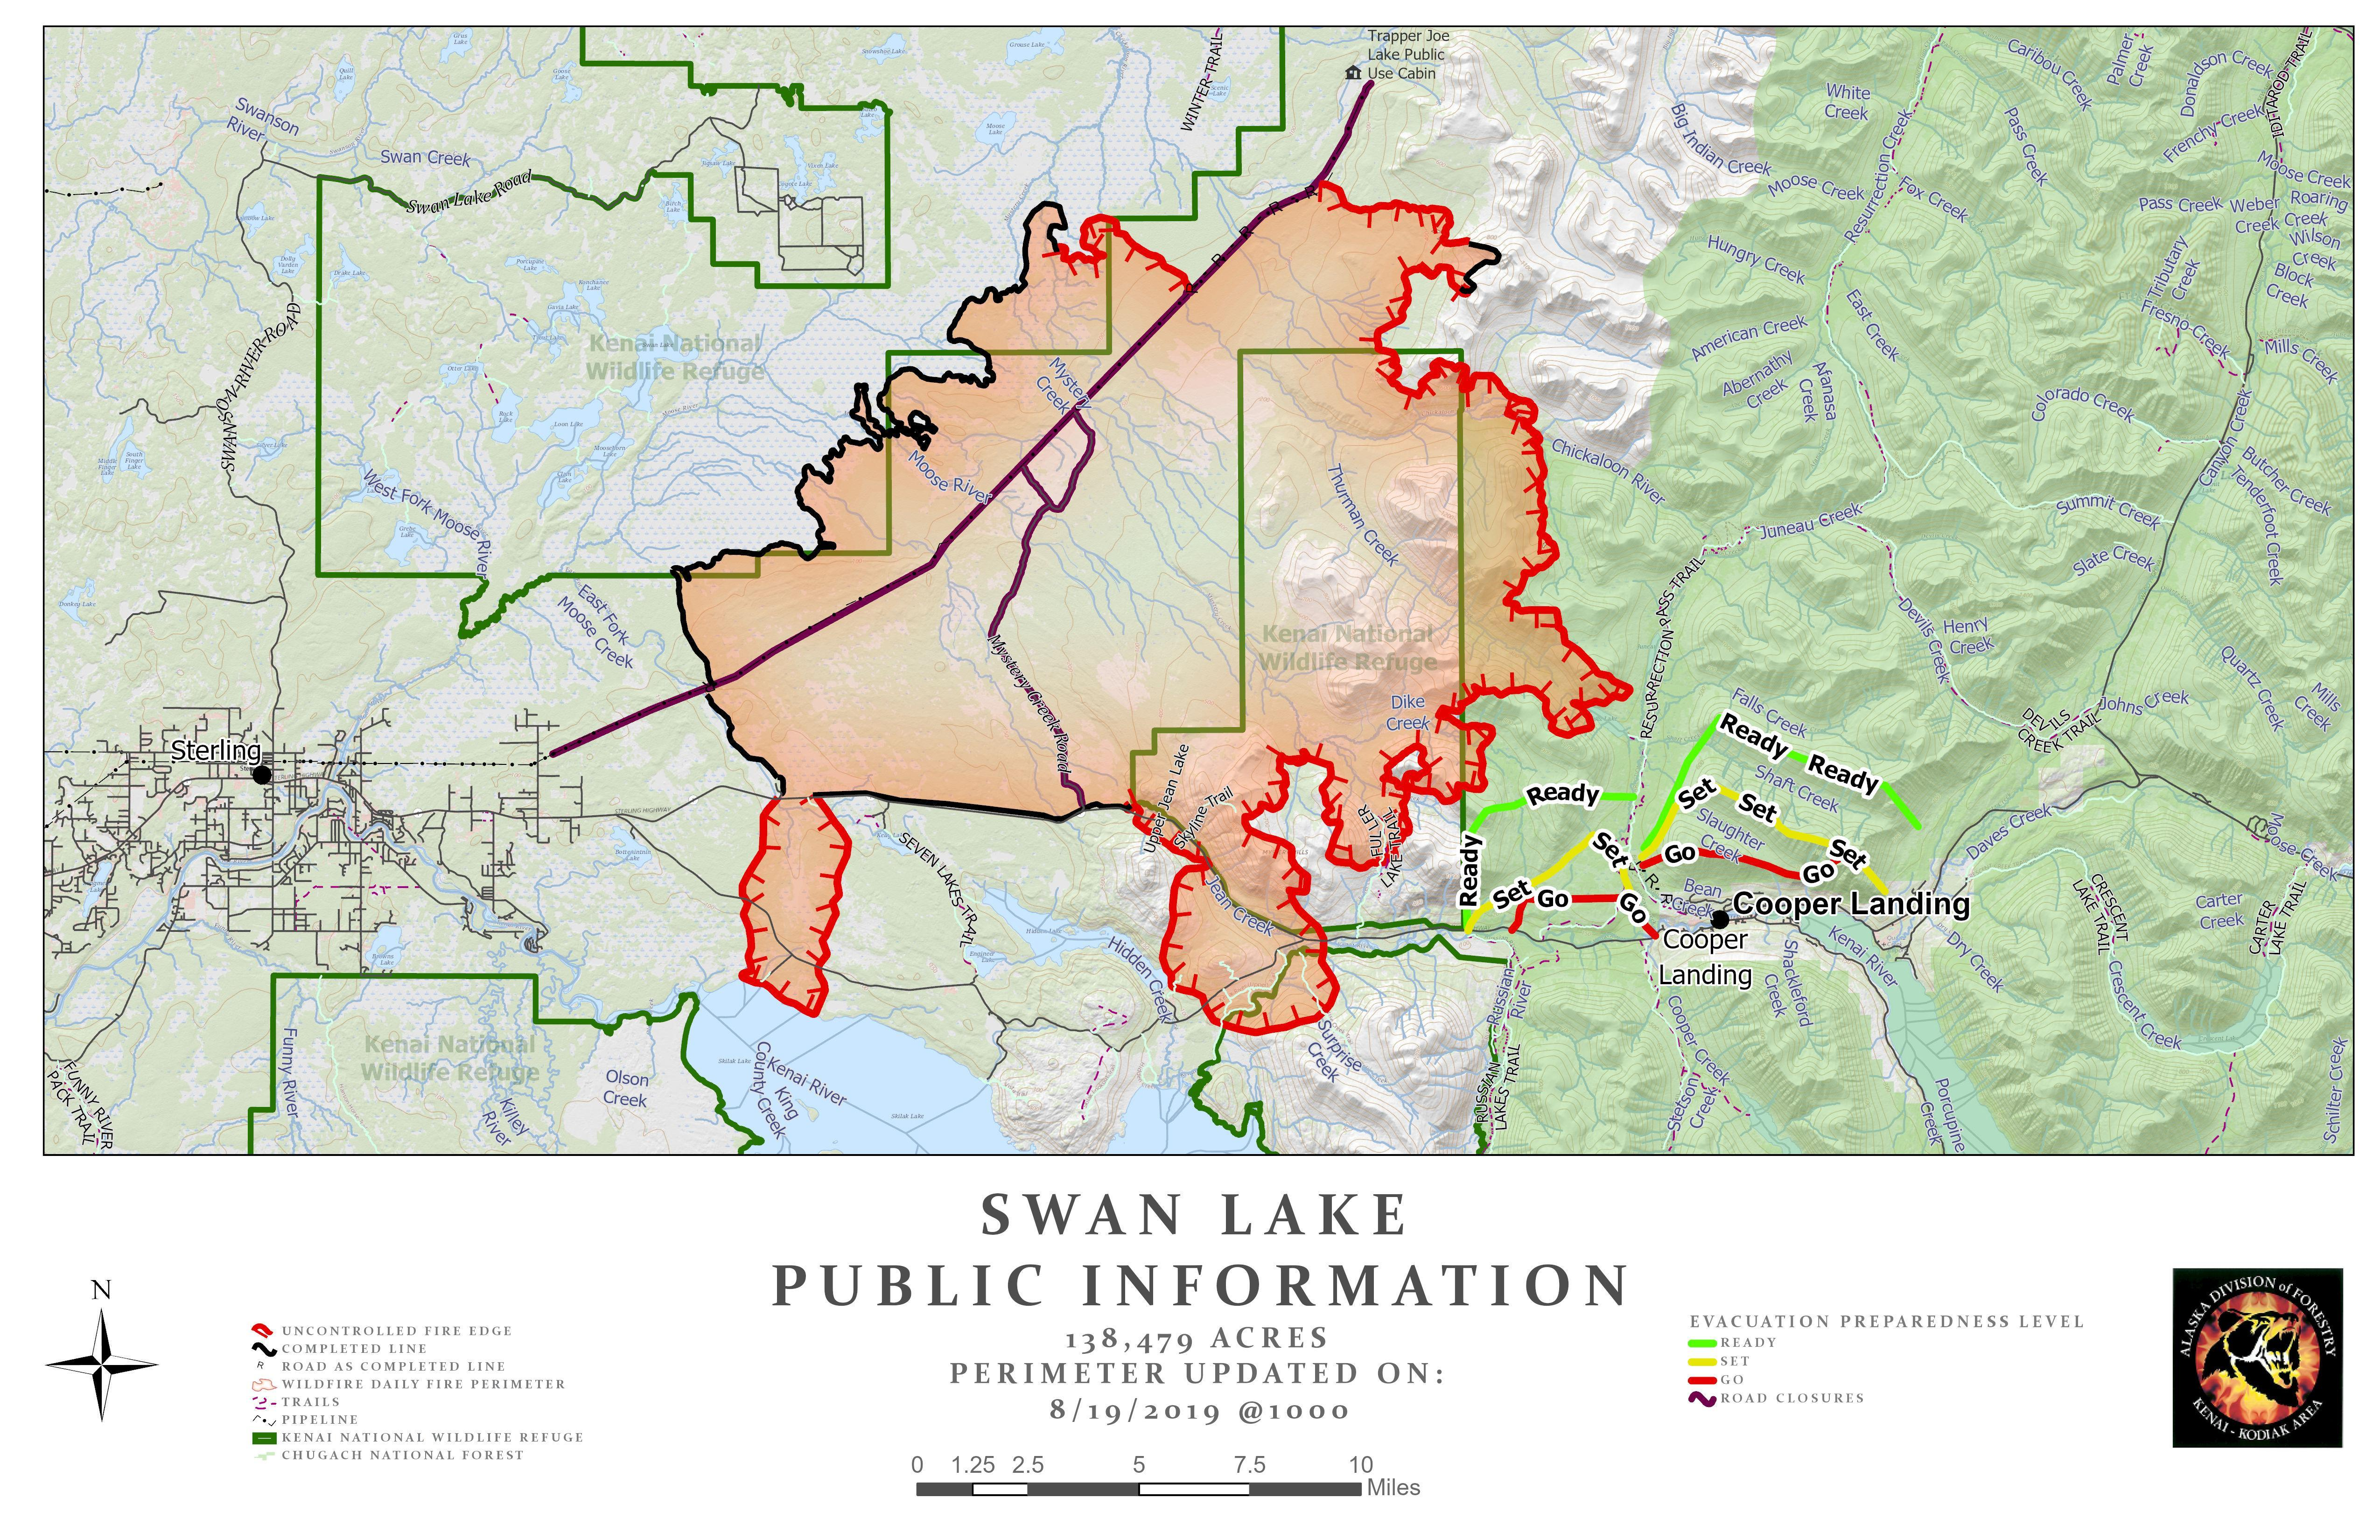 Swan Lake Fire Map - August 19, 2019